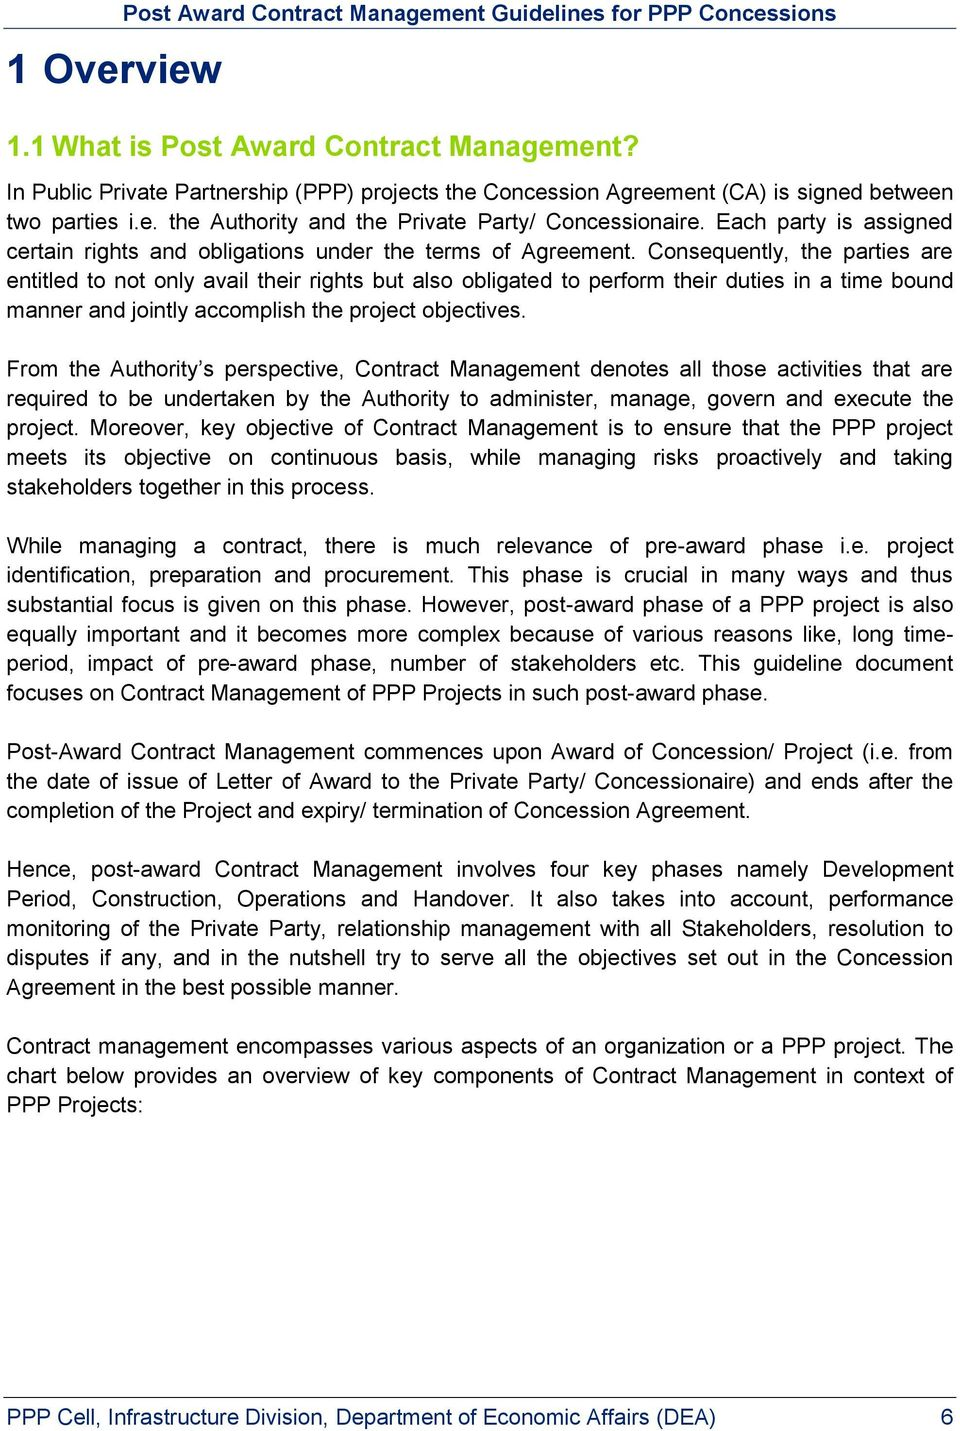 Guidelines For Post Award Contract Management For Ppp Concessions Pdf